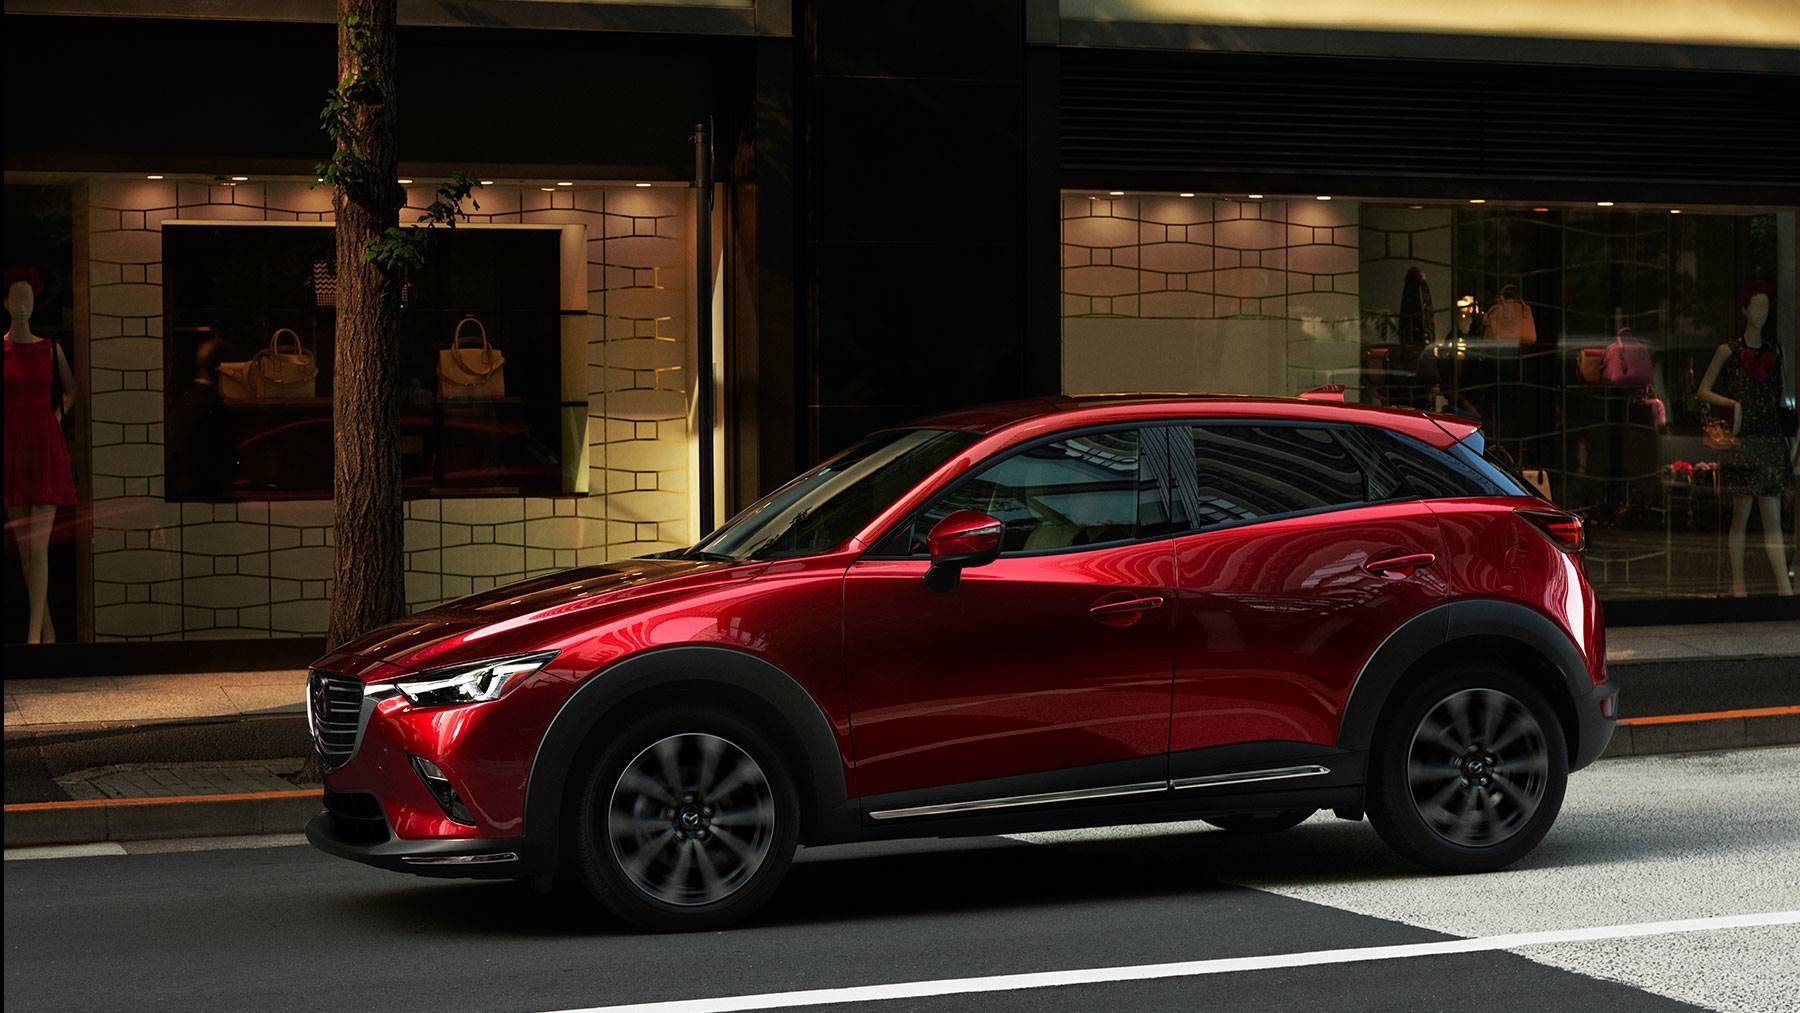 2019 Mazda CX-3 Financing near New Braunfels, TX